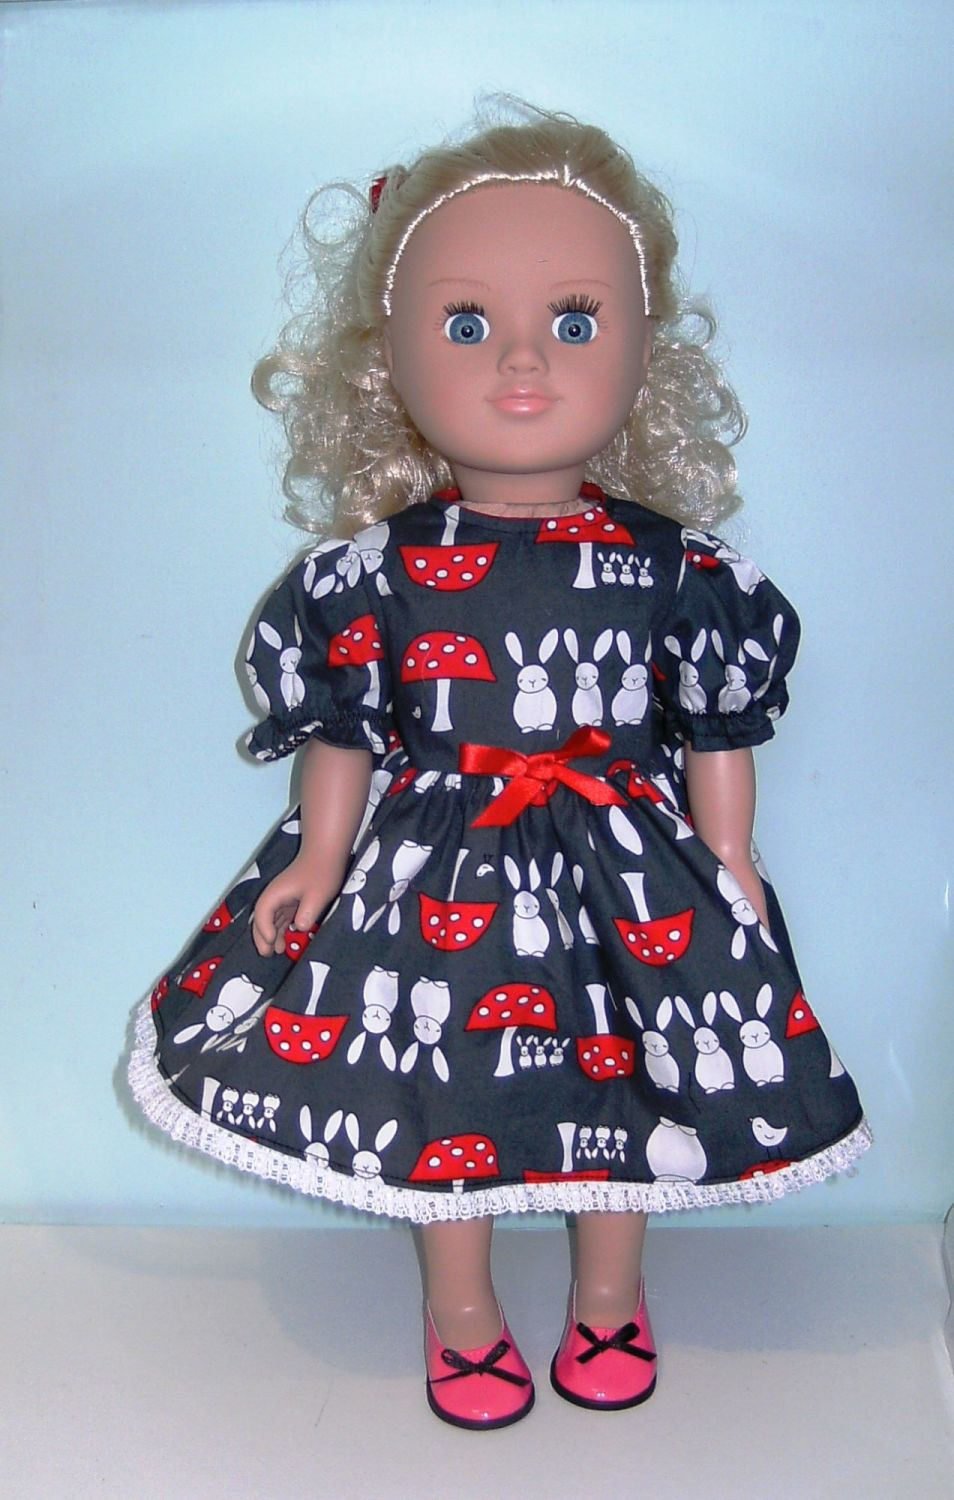 Doll's dress and hair ribbon